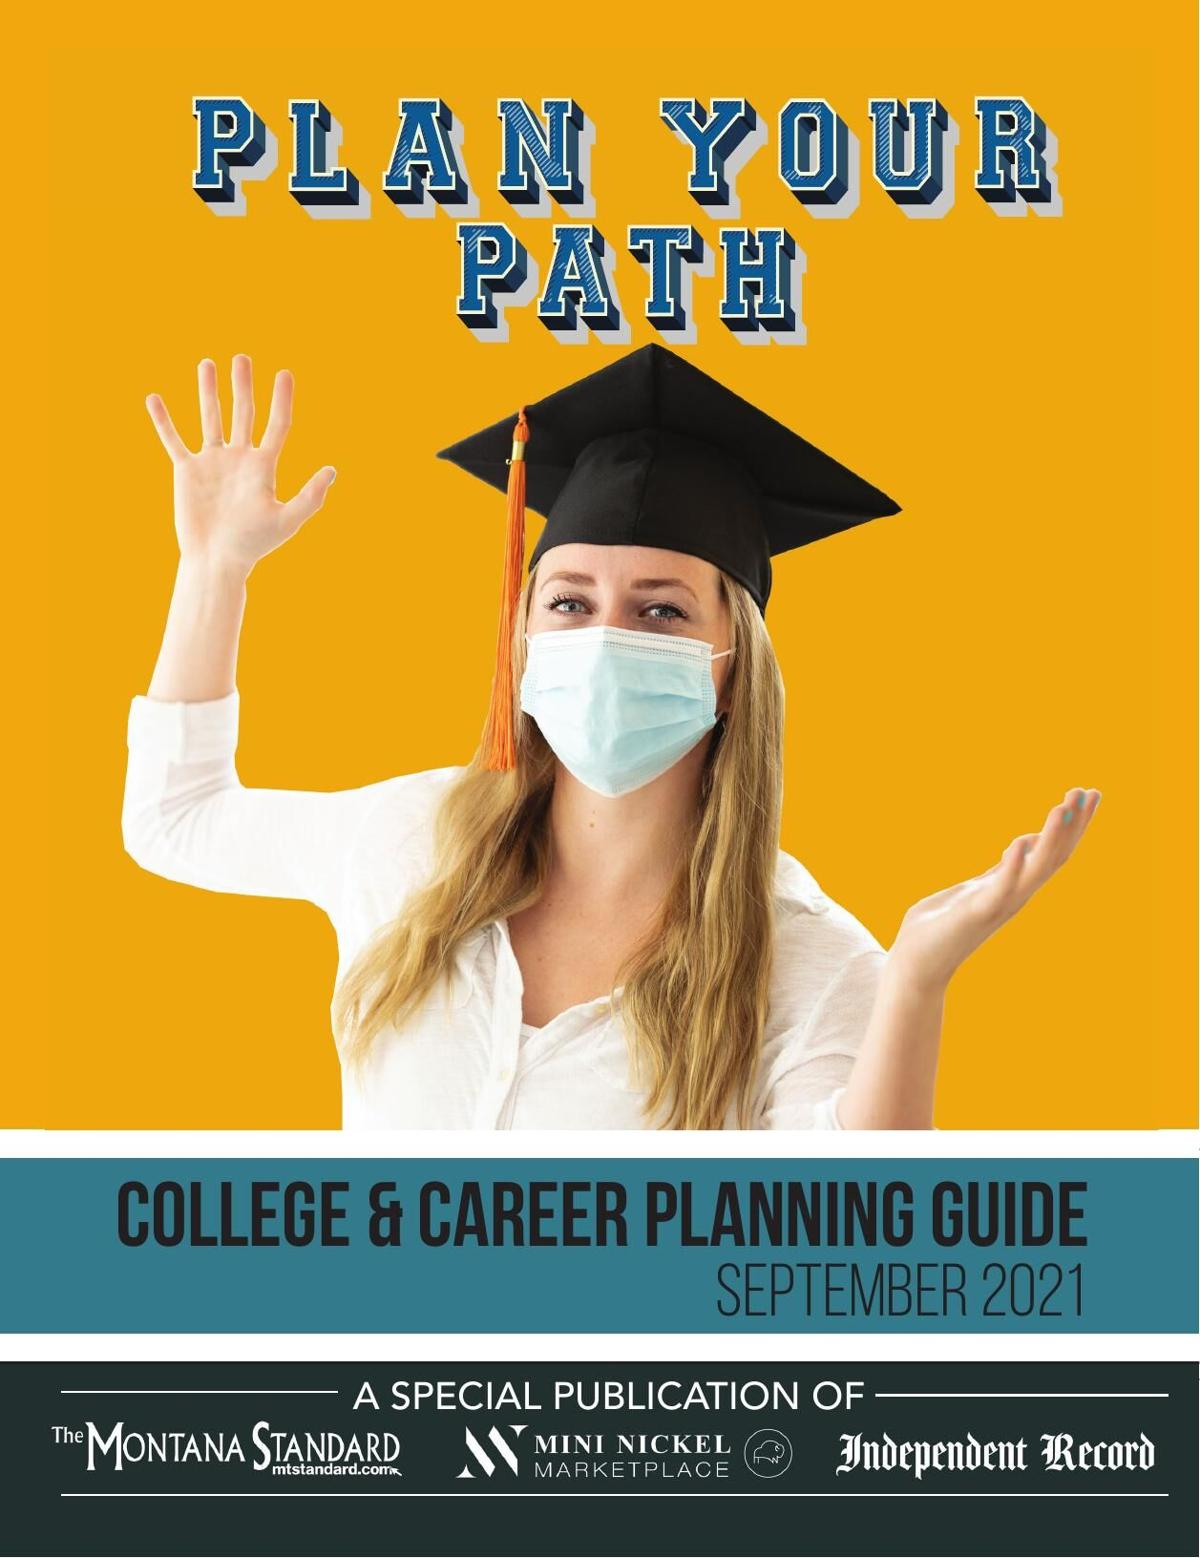 College & Career Planning Guide Sept. 2021